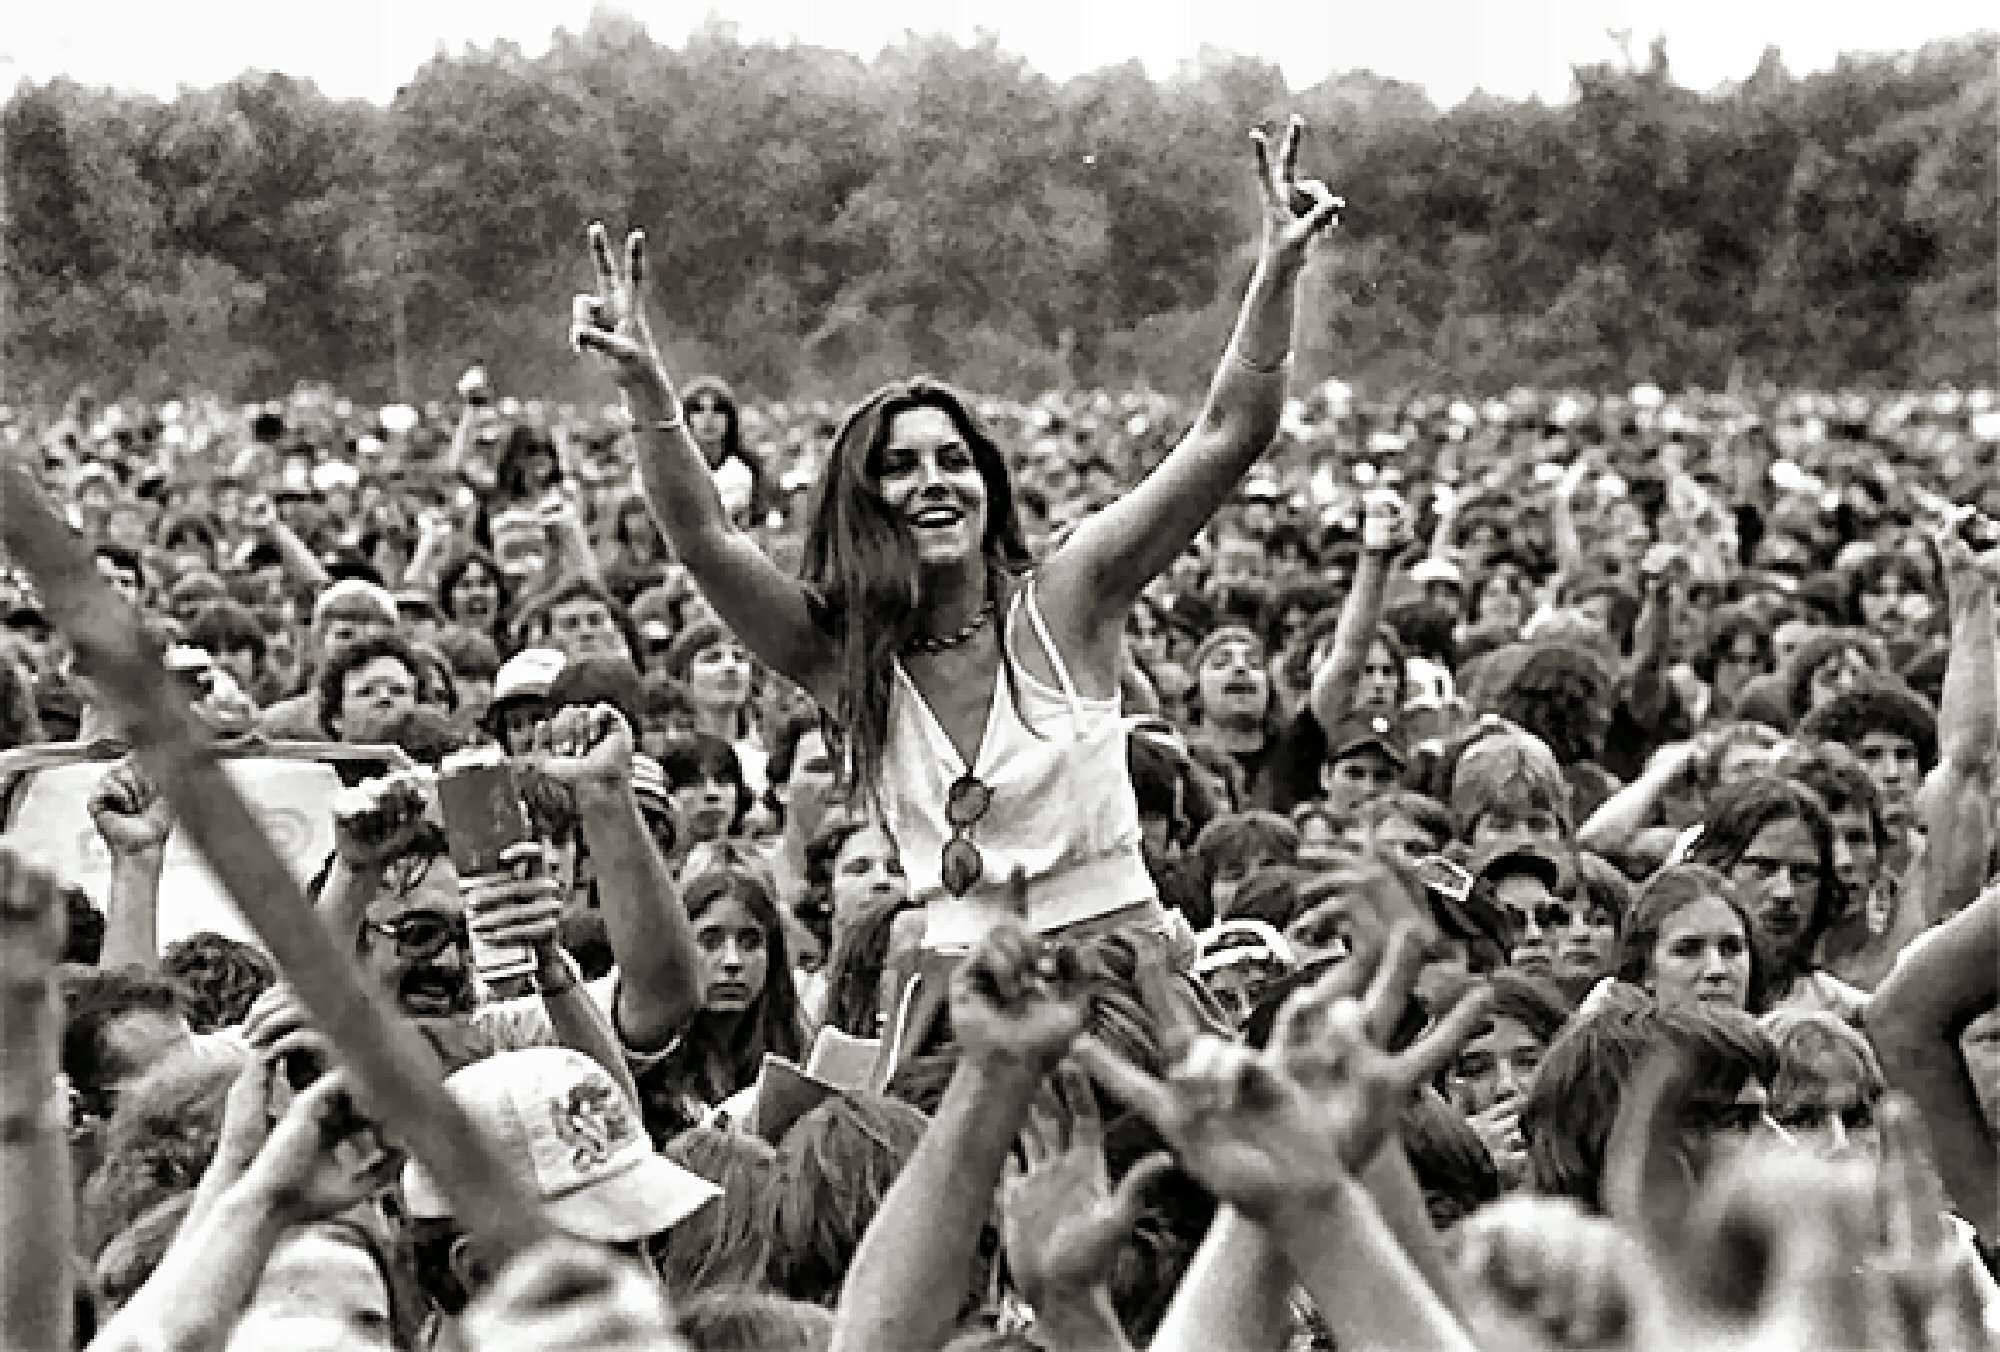 Woodstock Festival cancelled? All you need to know